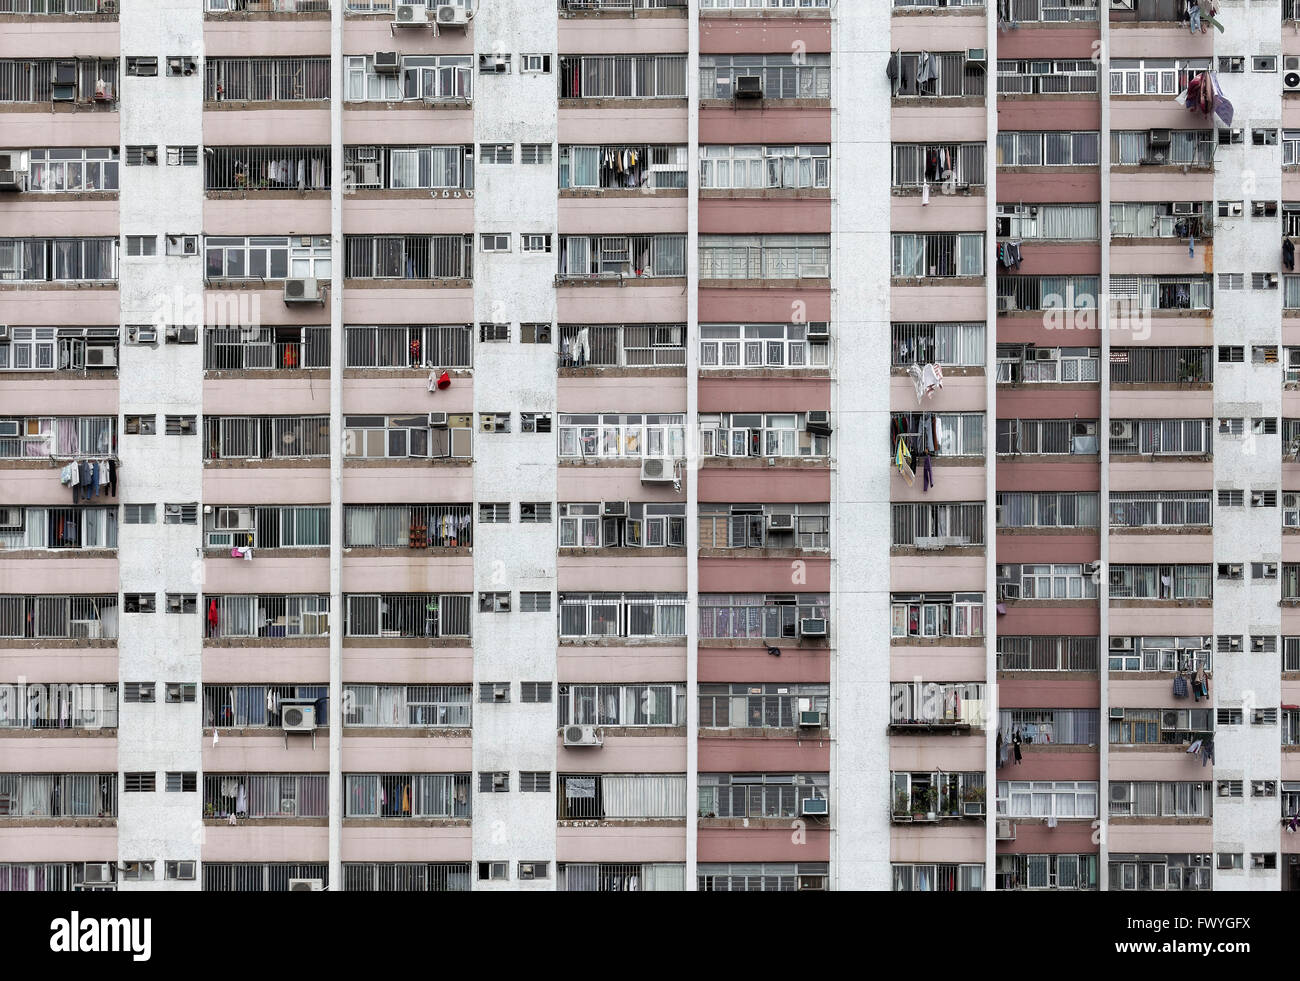 Sky scraper front with external air conditioners, Ping Shek Estate, housing development from 1970, Kwun Tong District, - Stock Image